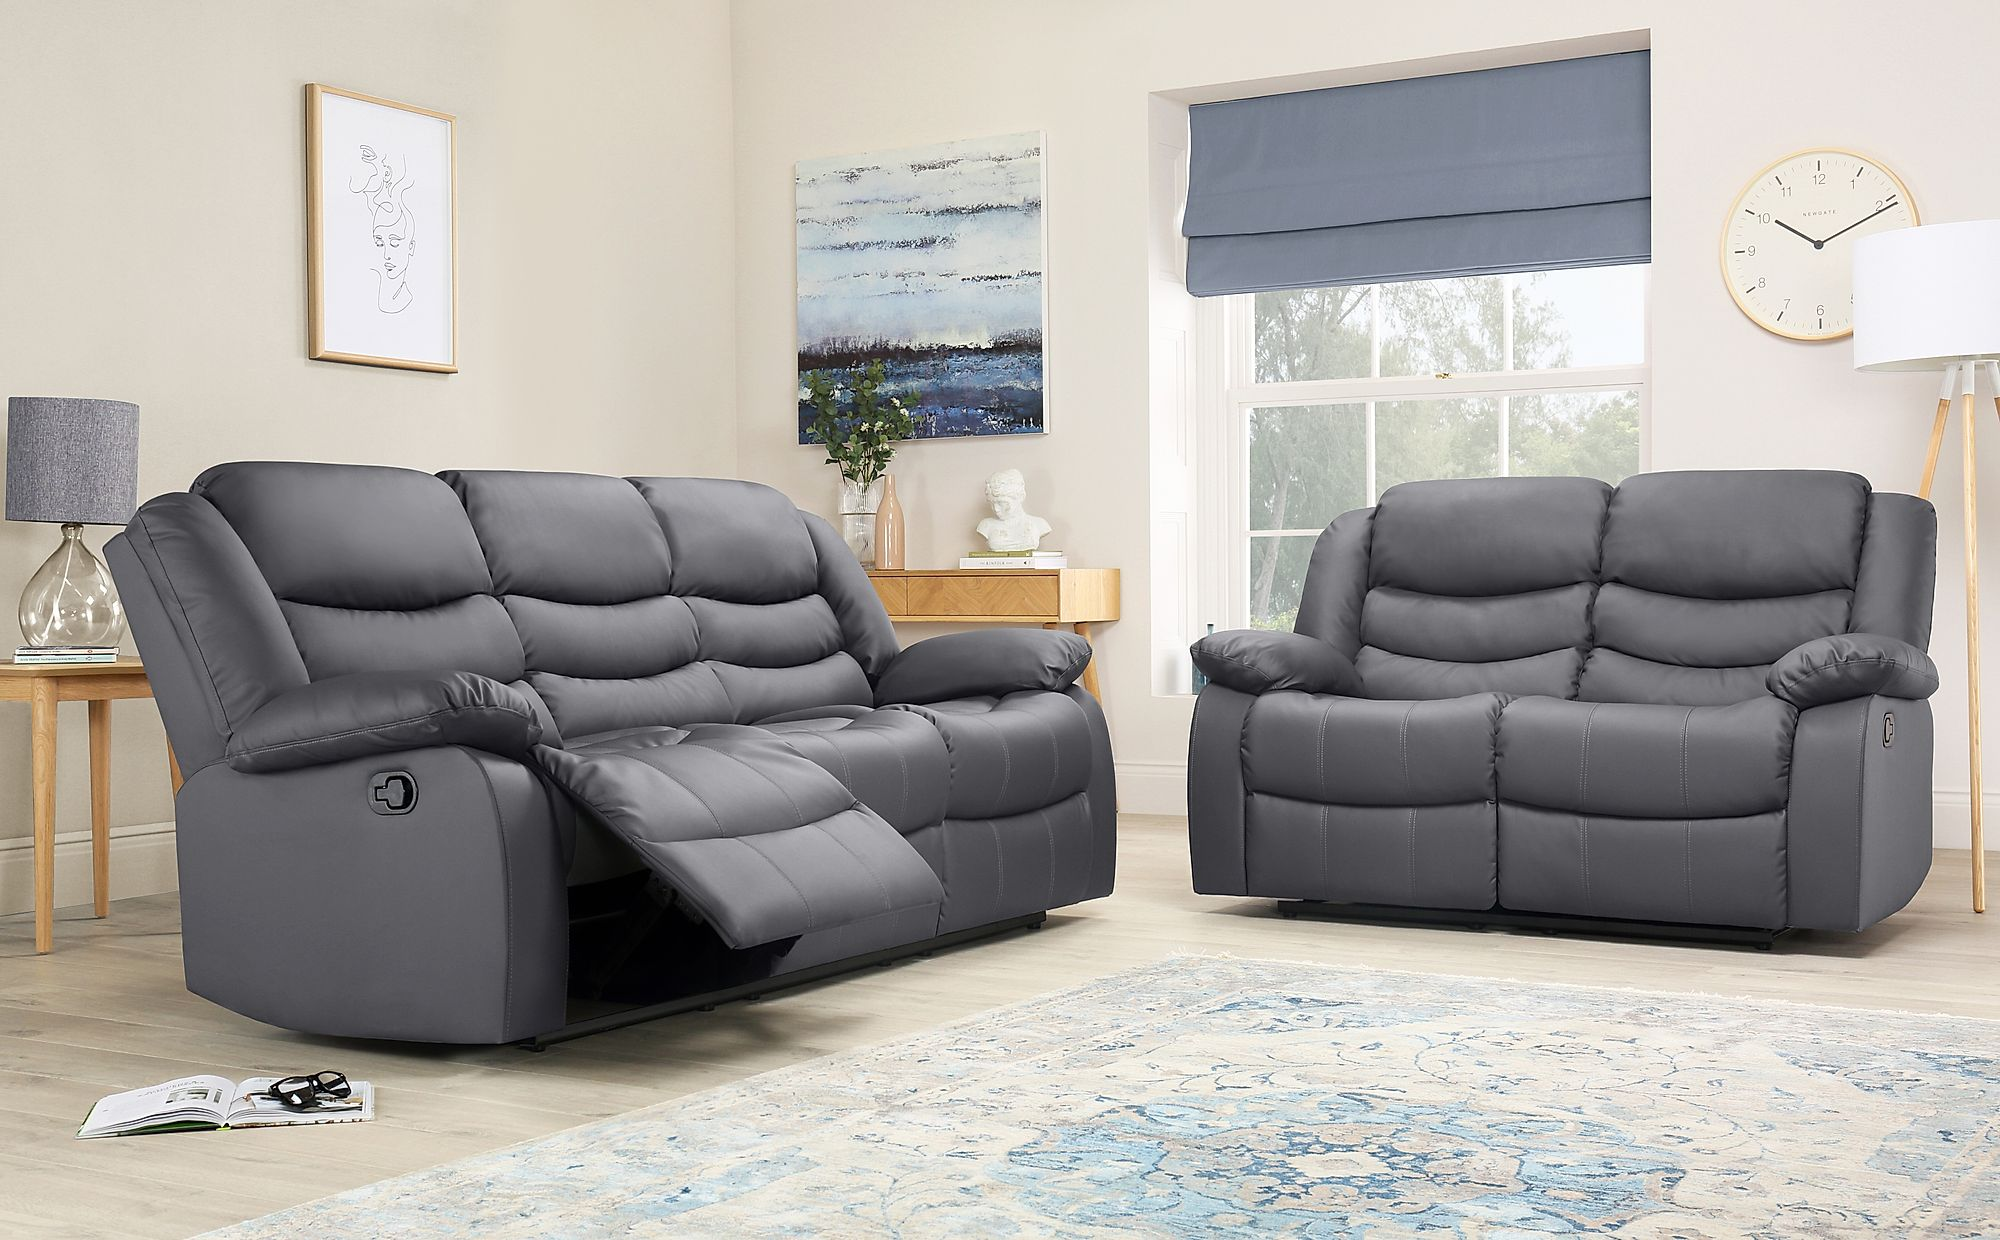 Sorrento Grey Leather Recliner Sofa 3 2 Seater Only 163 899